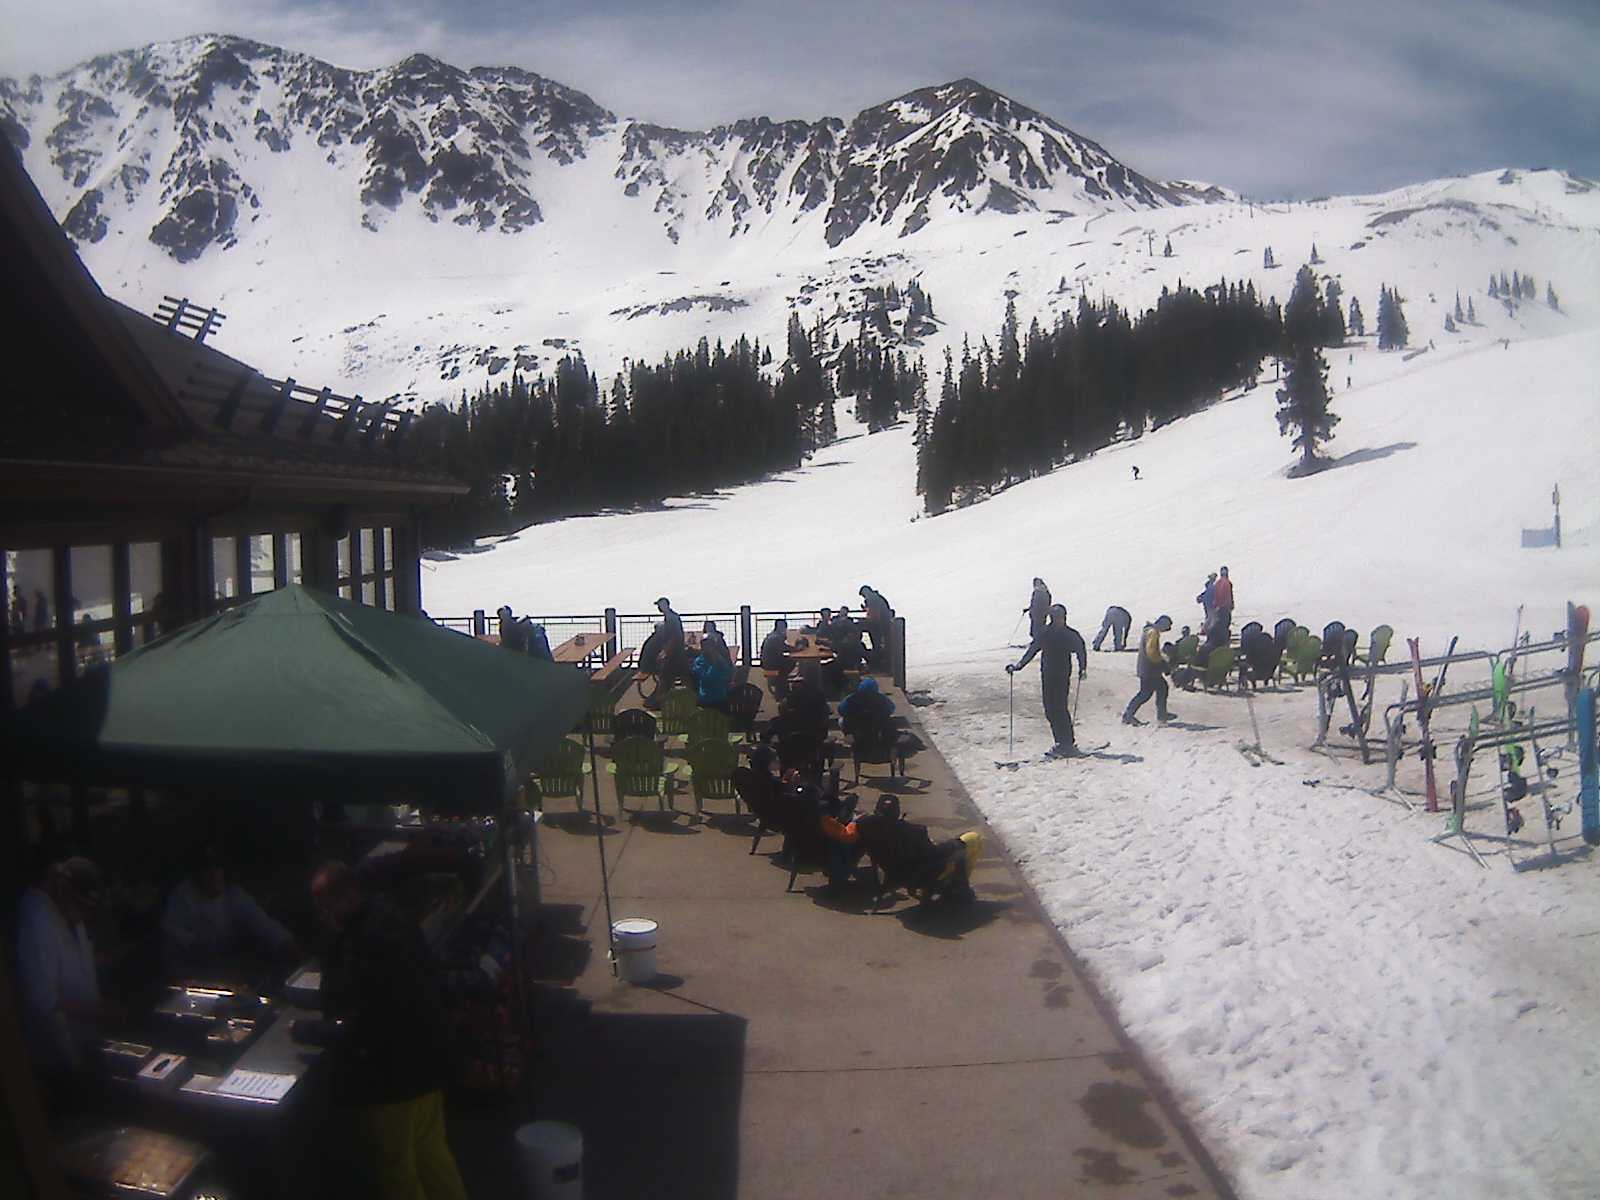 Arapahoe Basin, CO today.